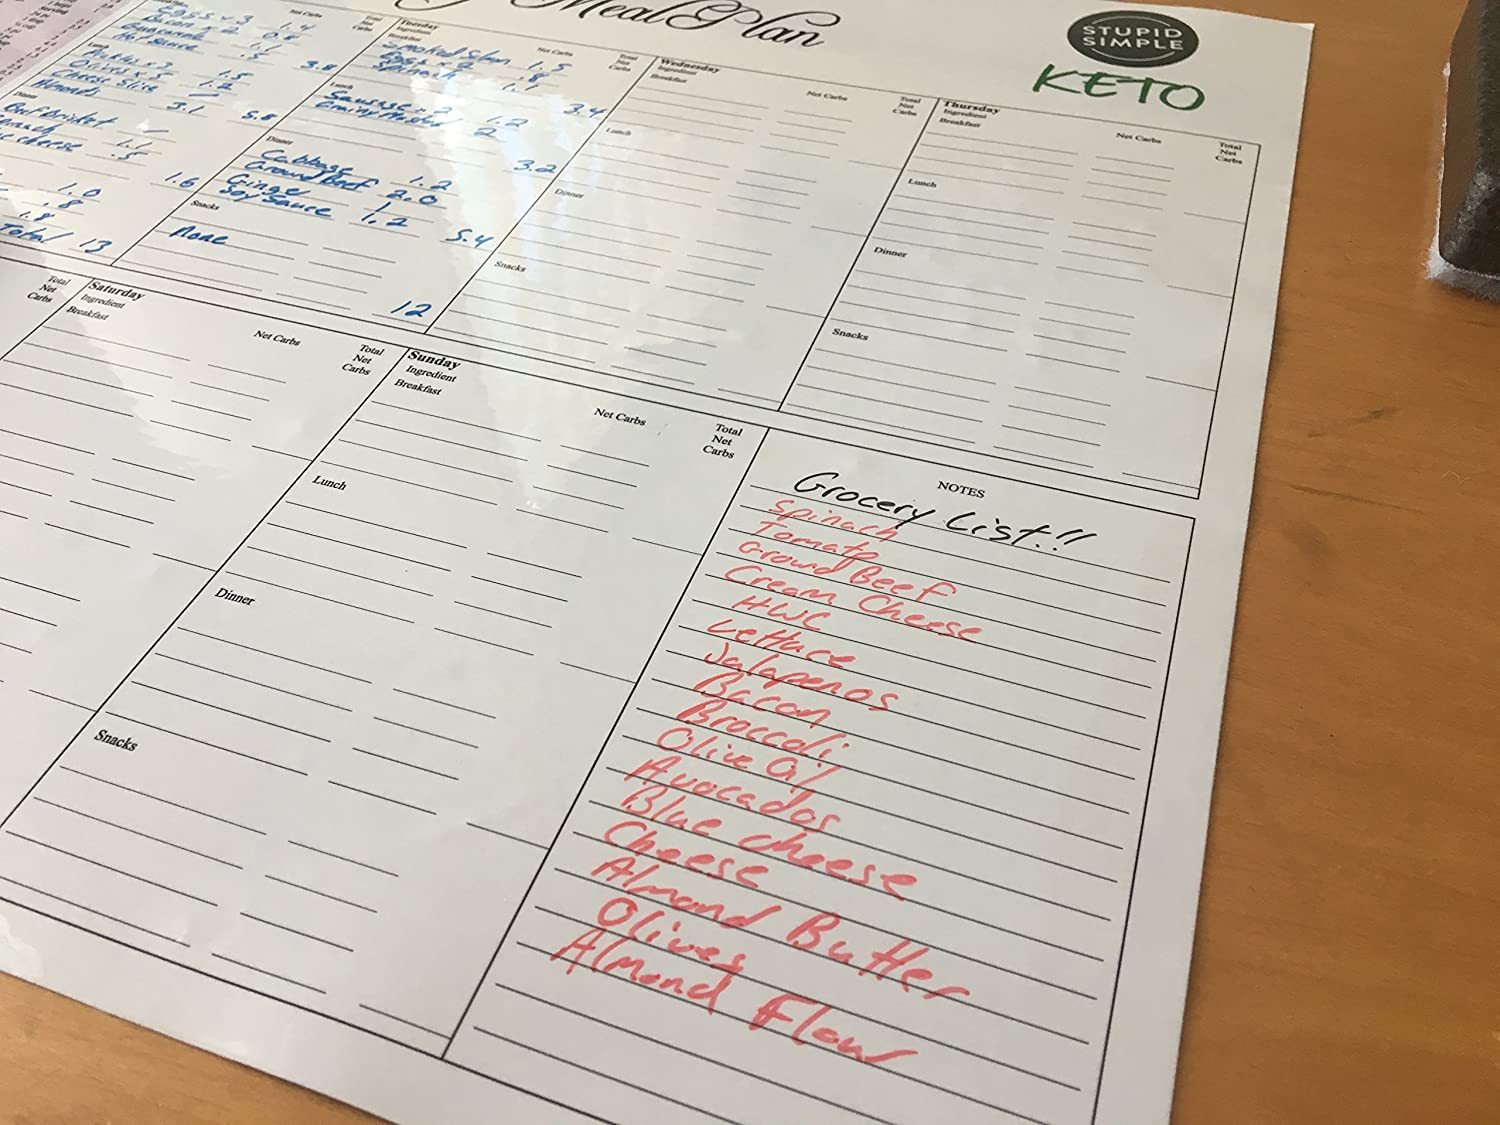 Stupid Simple Keto Meal Planner Dry Erase Wall Chart With